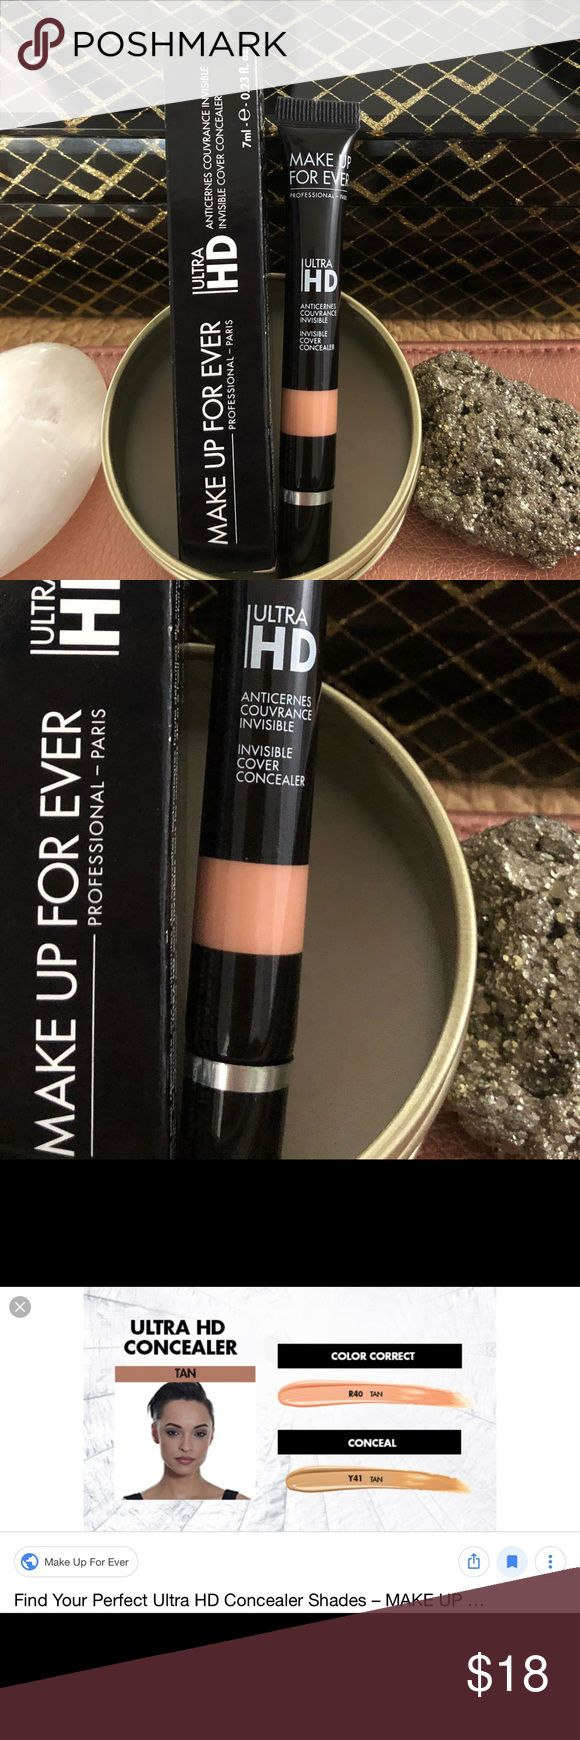 MUFE Ultra HD Invisible Cover Concealer (R40) This Makeup